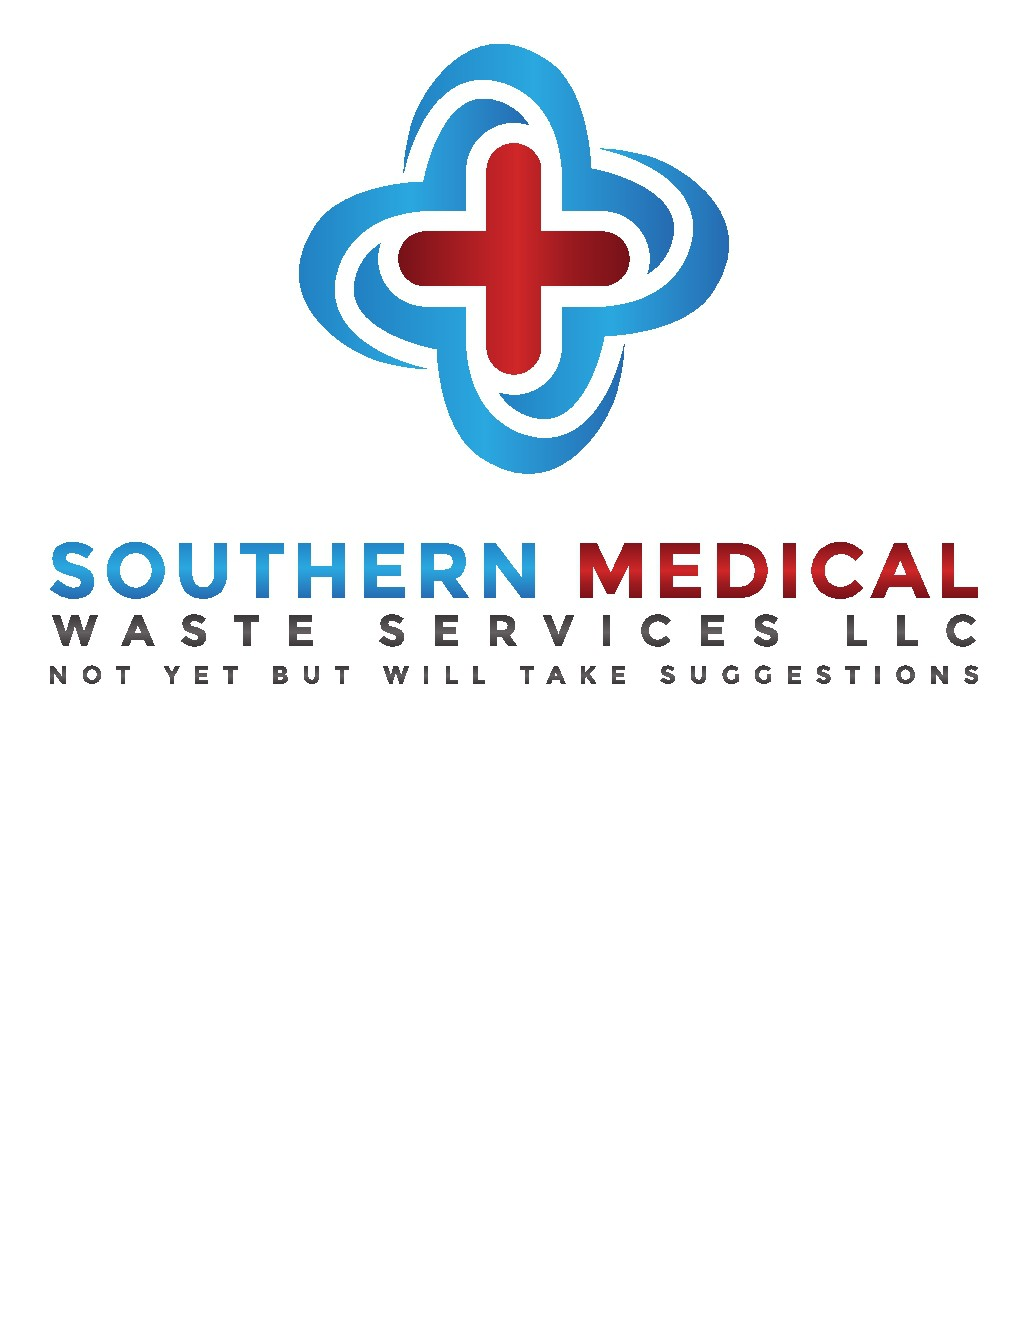 Design a medical waste comapny logo